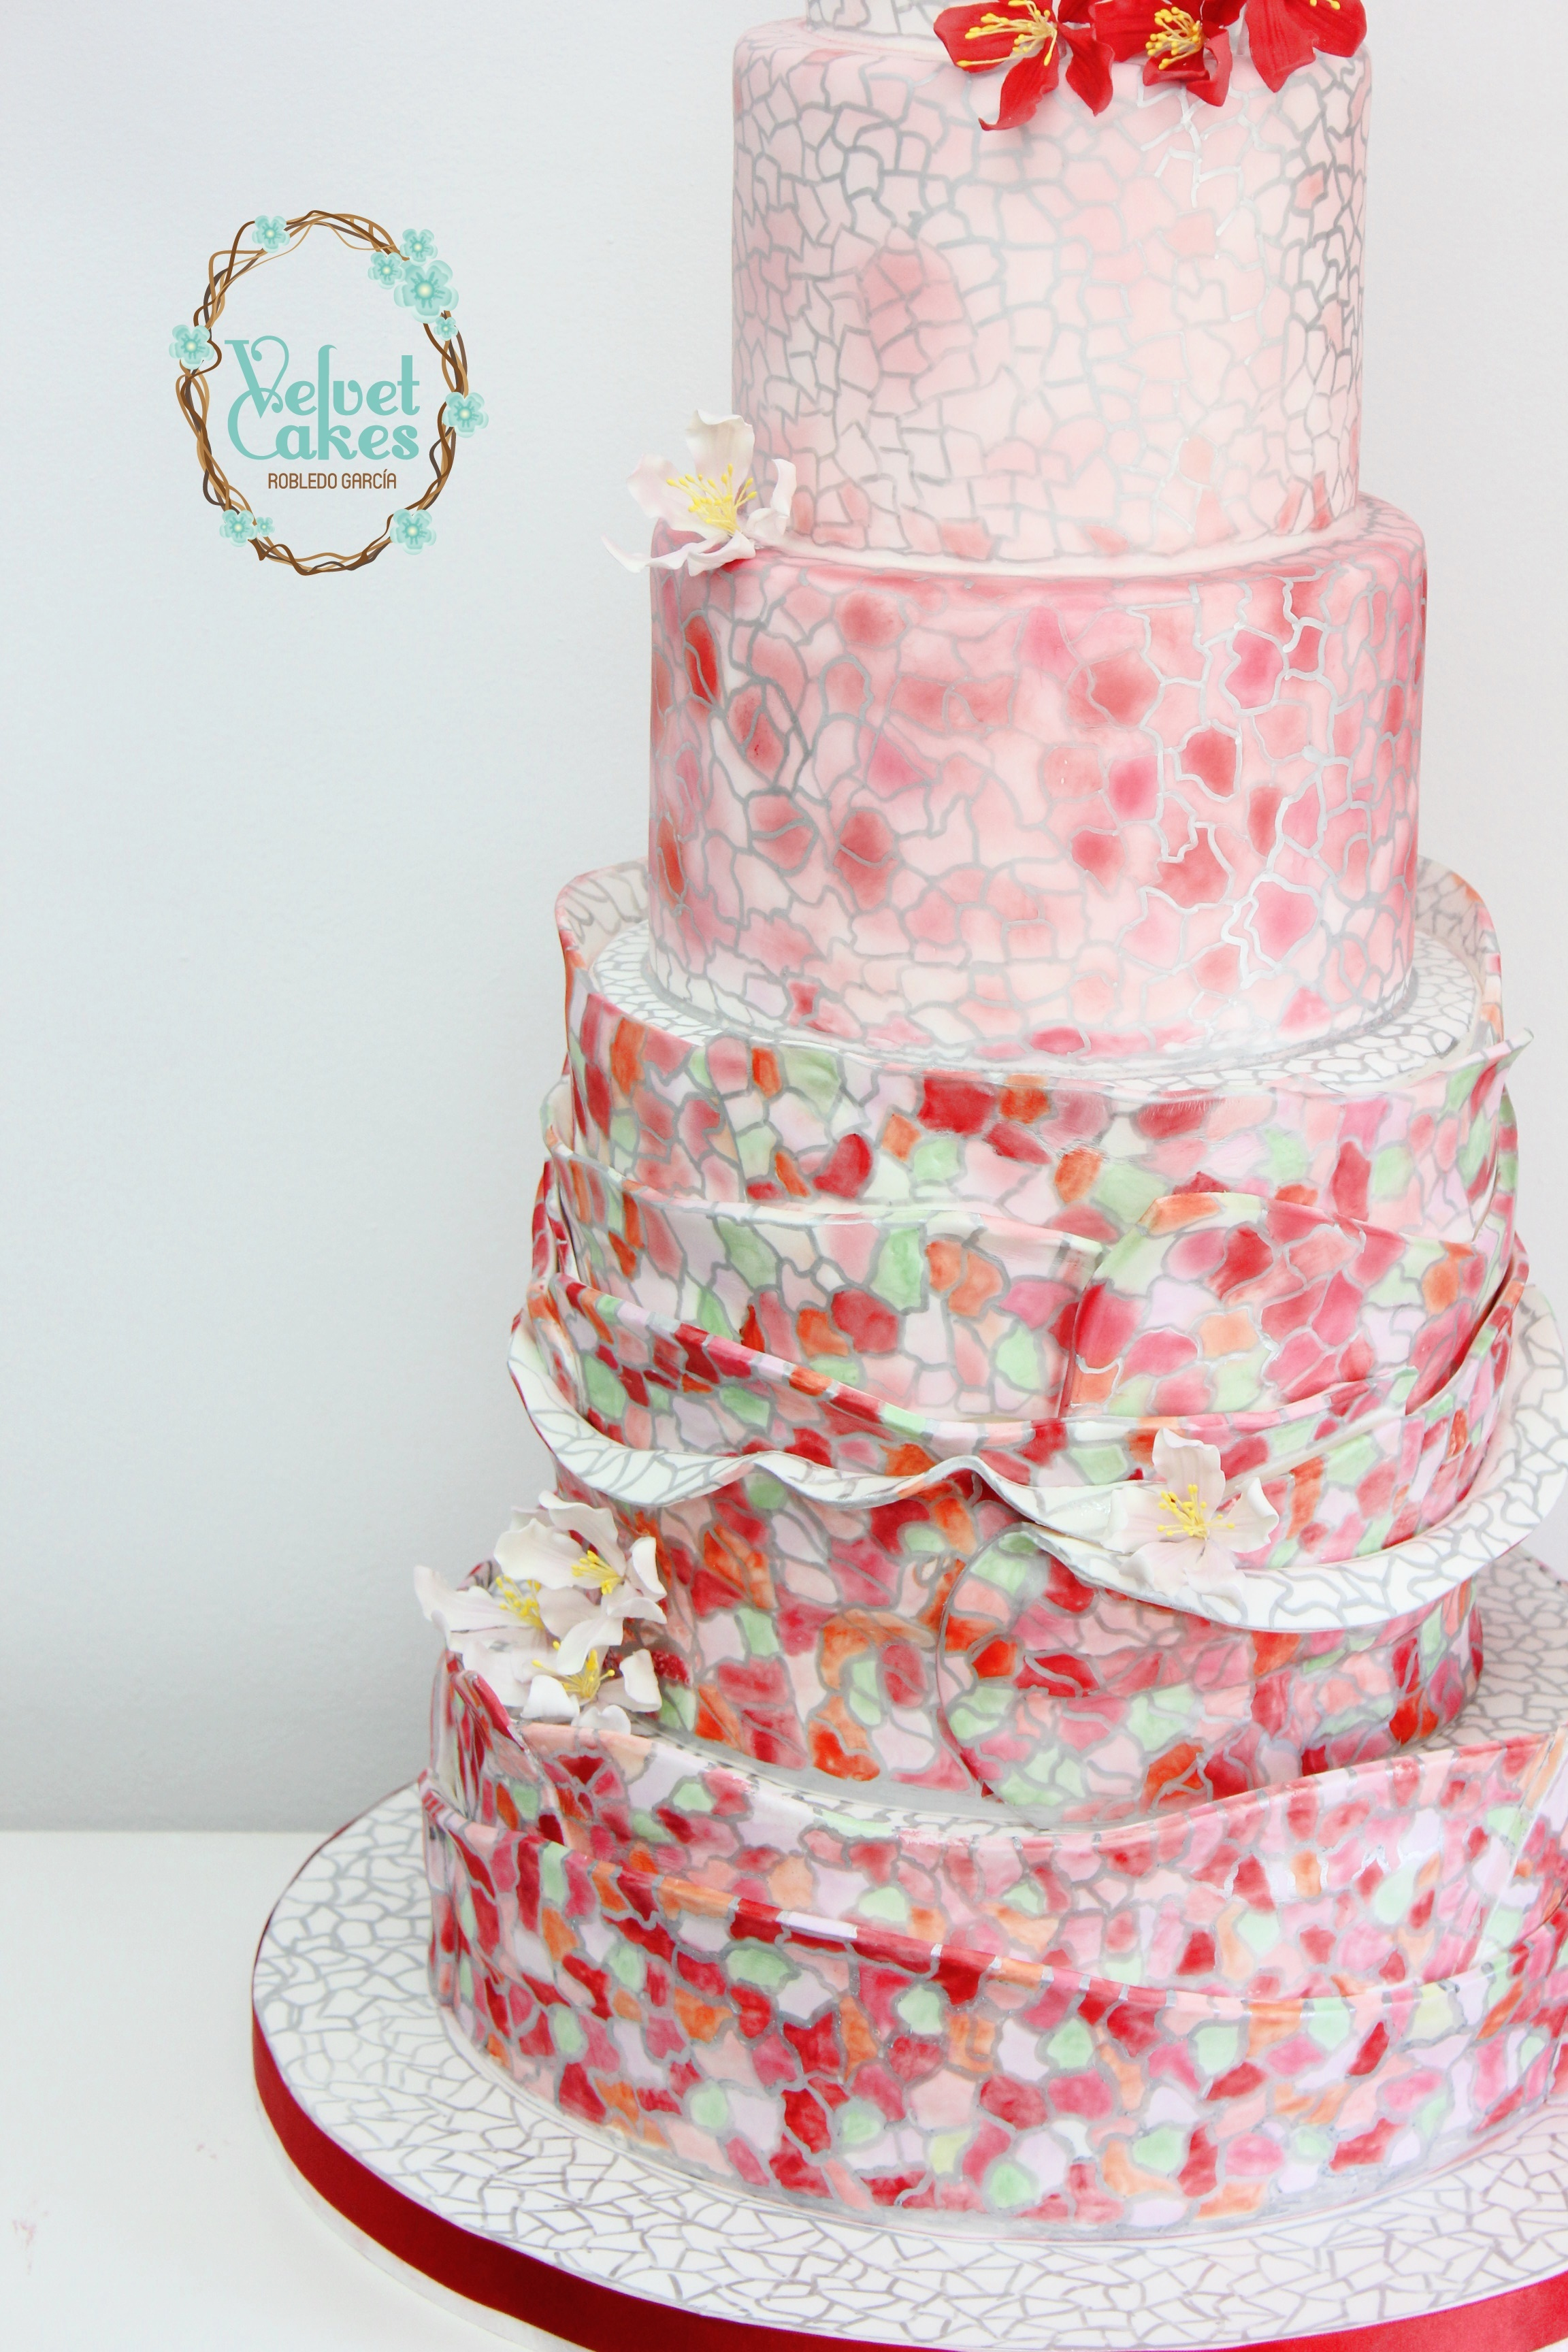 Hand painted patterned cake